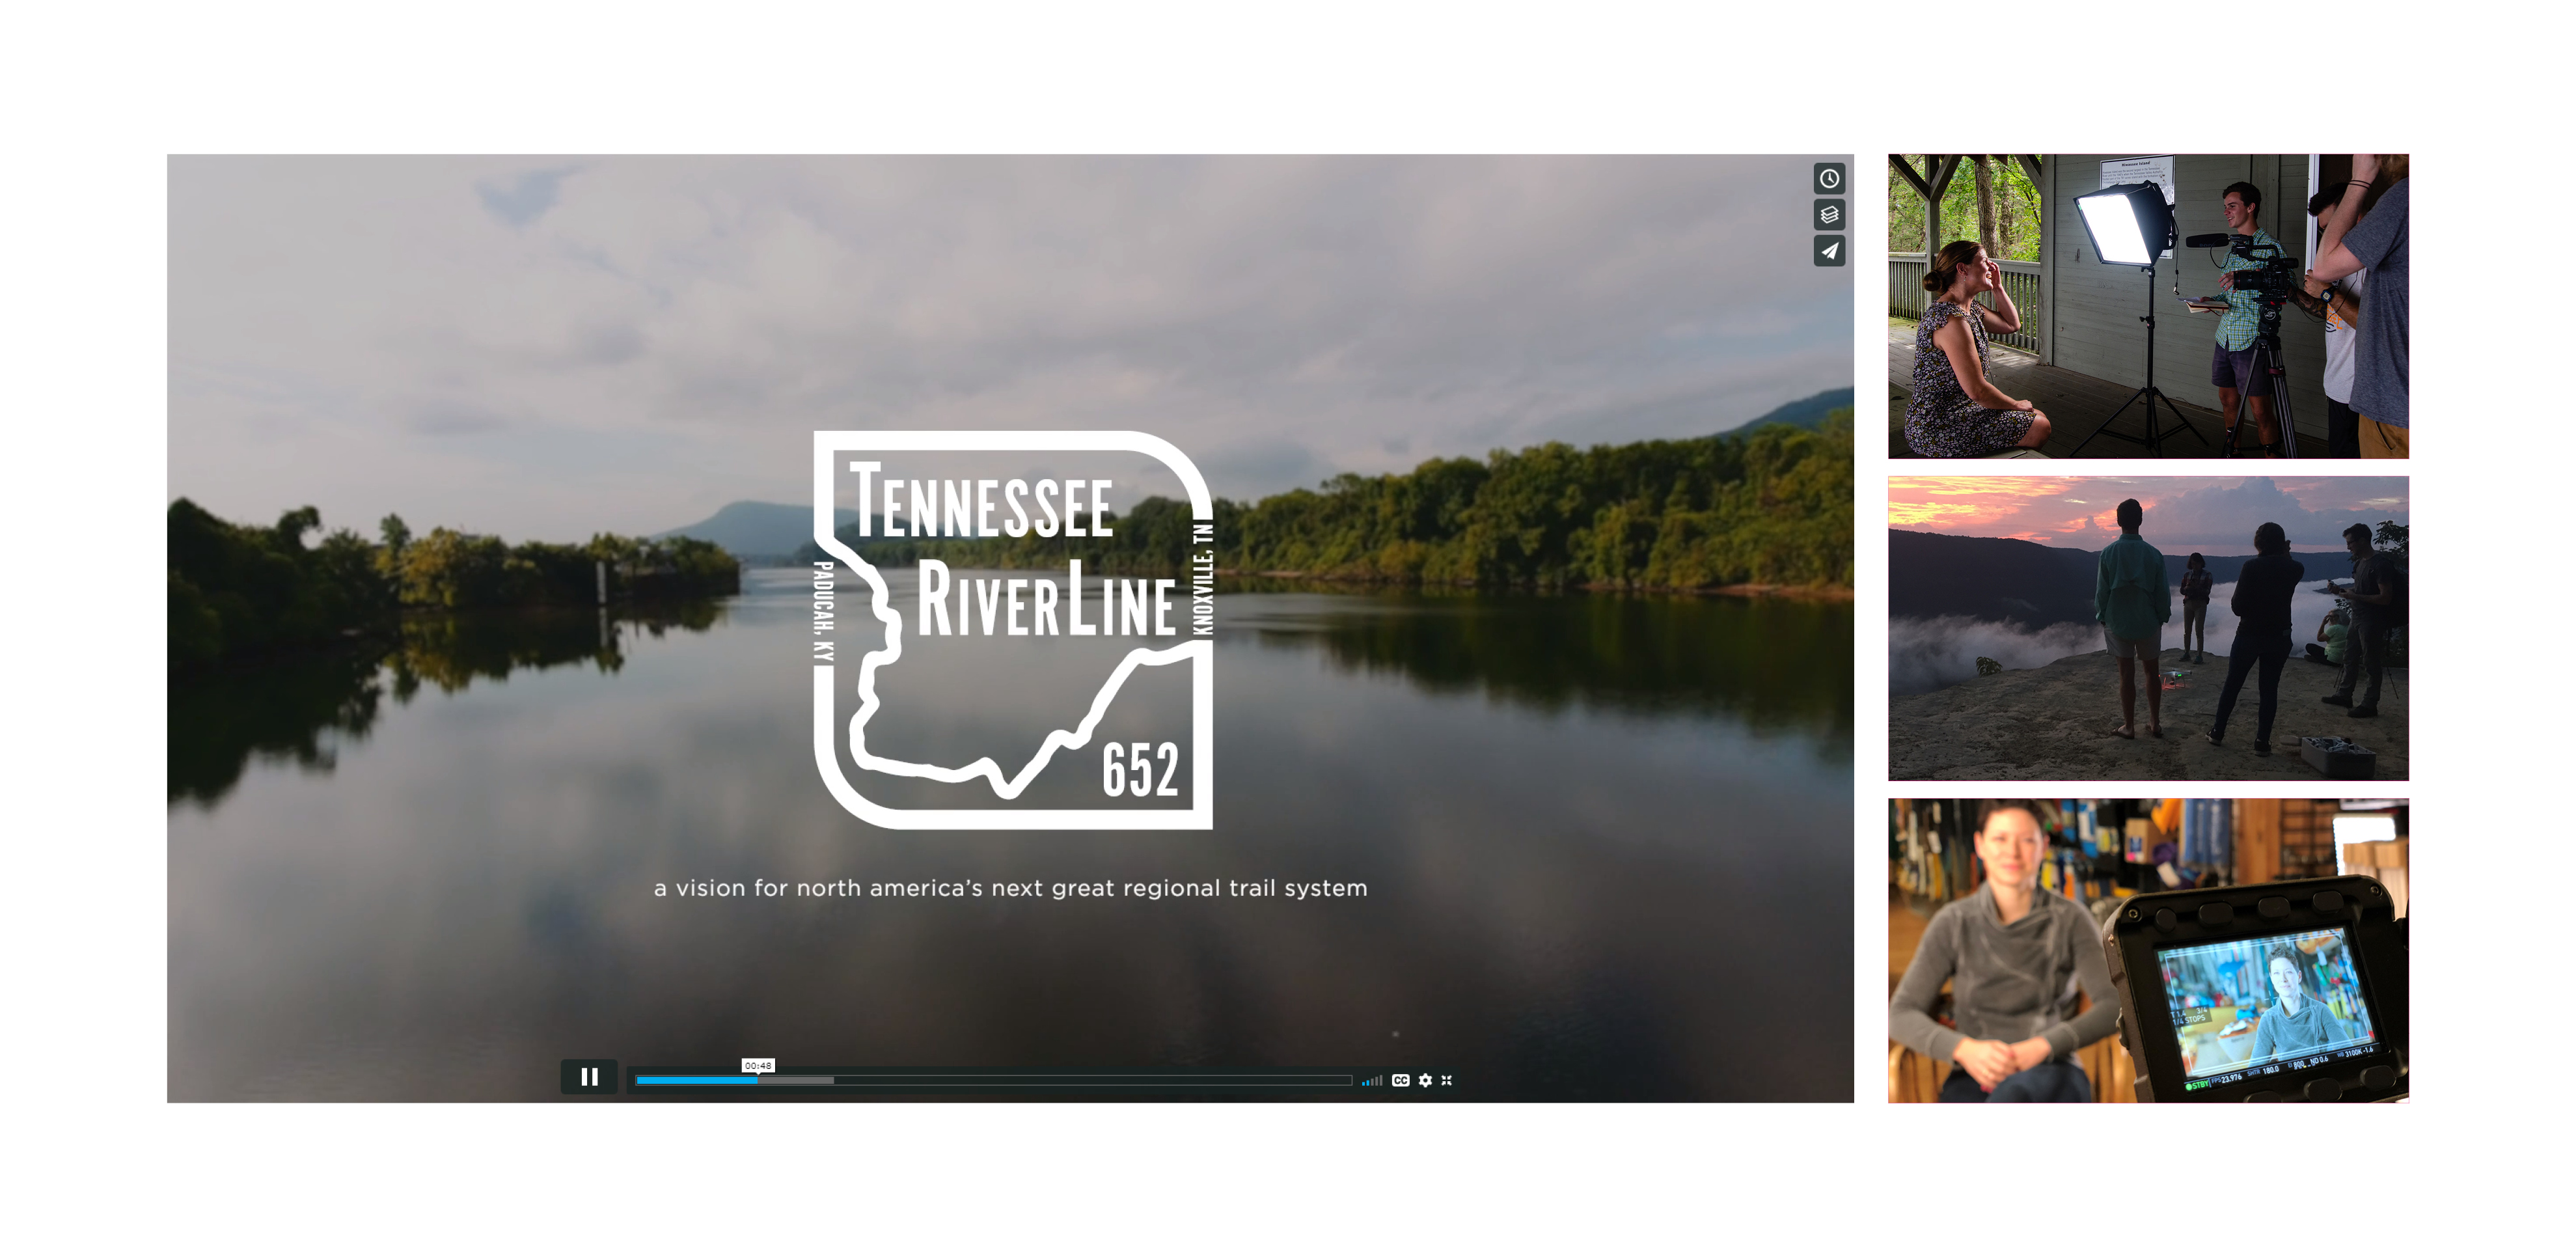 Tennessee RiverLine Vision Video